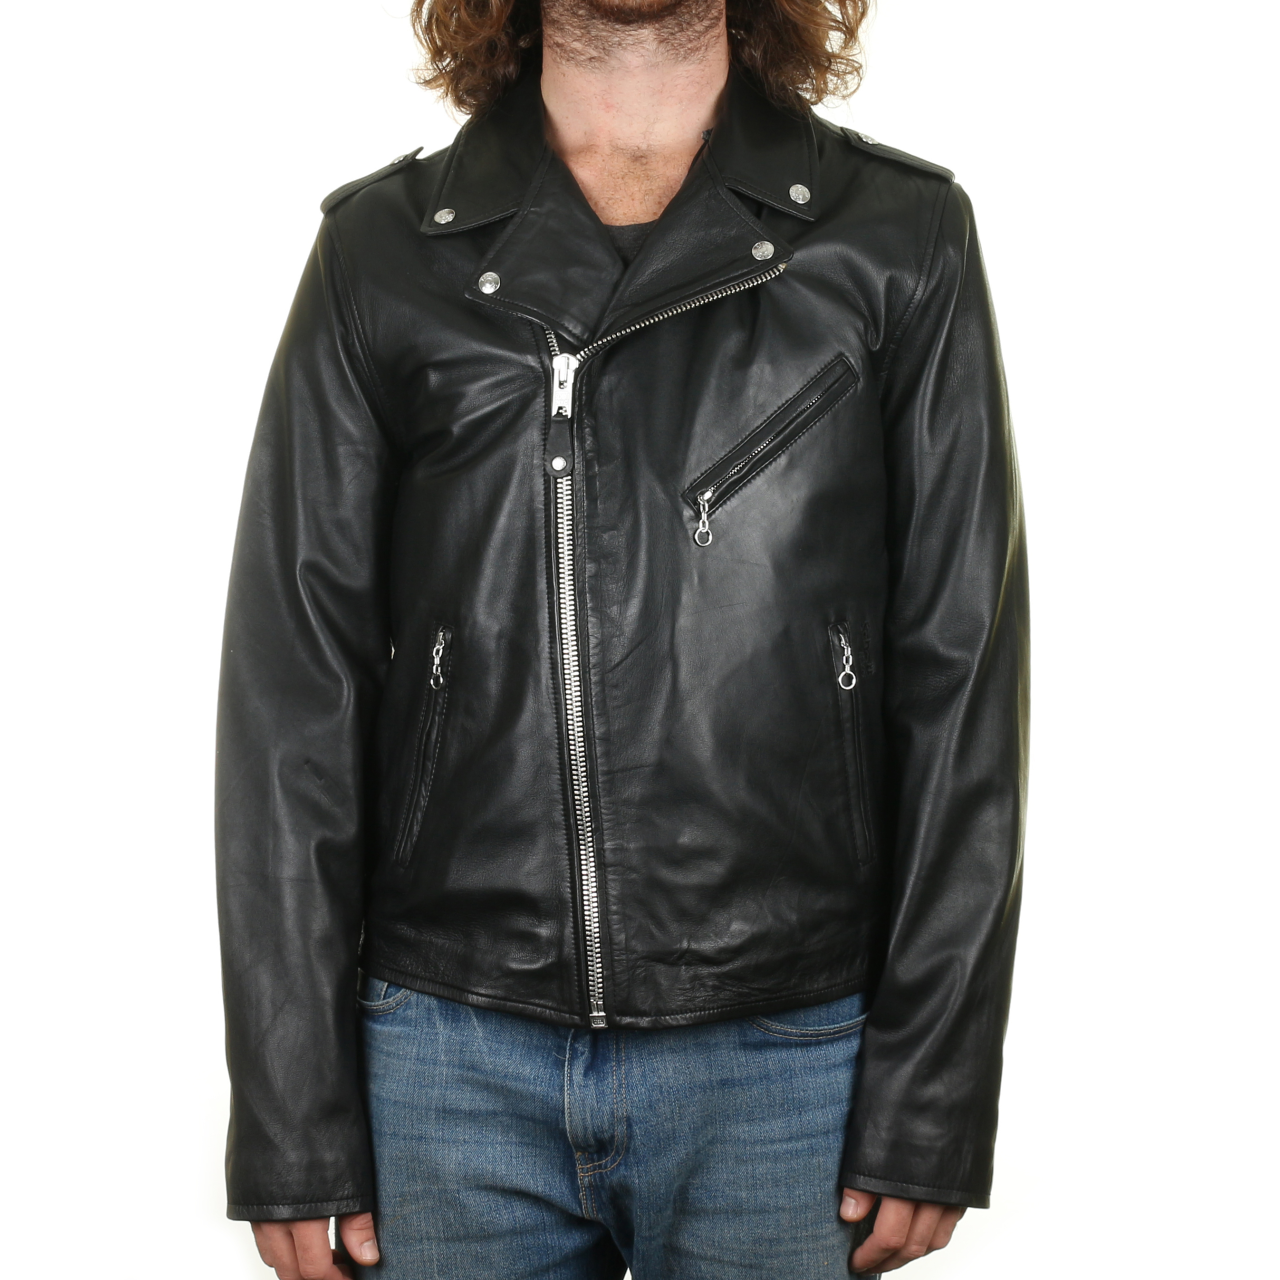 Where to buy leather jackets in nyc